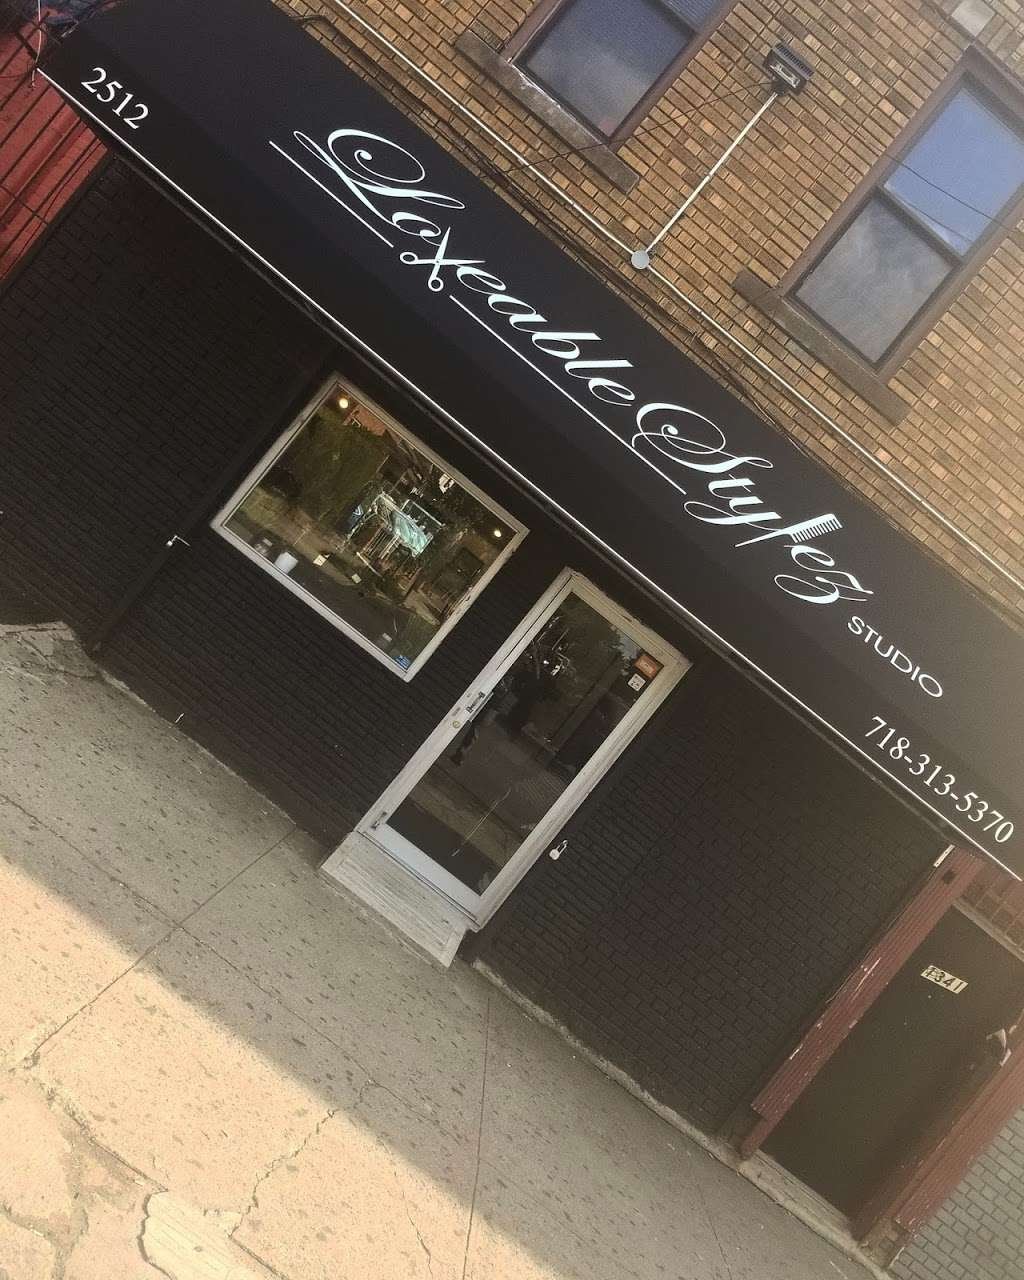 loveable stylez studio - hair care  | Photo 1 of 6 | Address: 2512 Foster Ave, Brooklyn, NY 11210, USA | Phone: (718) 313-5370